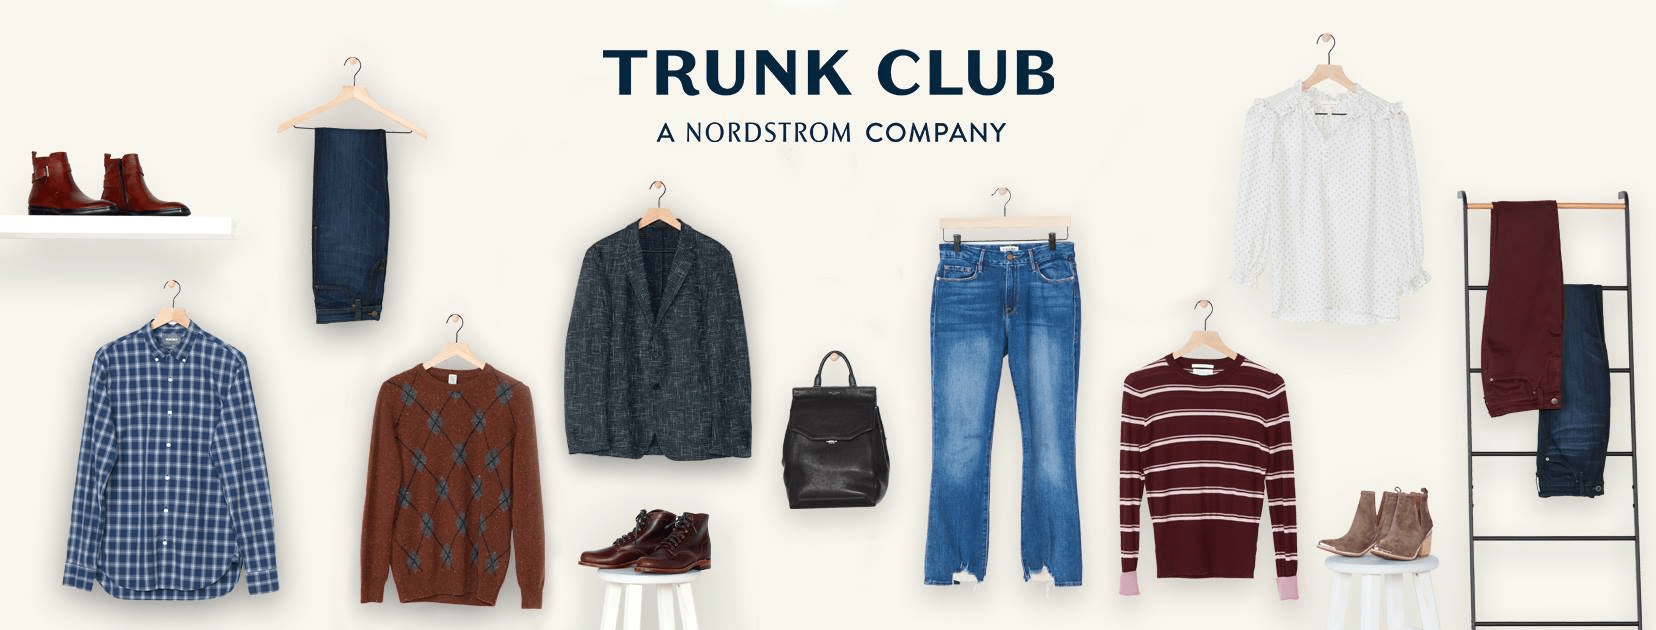 Trunk Club Cyber Monday 2018 Sale: Get Up To $200 Trunk Club Credits With Gift Card Purchases!